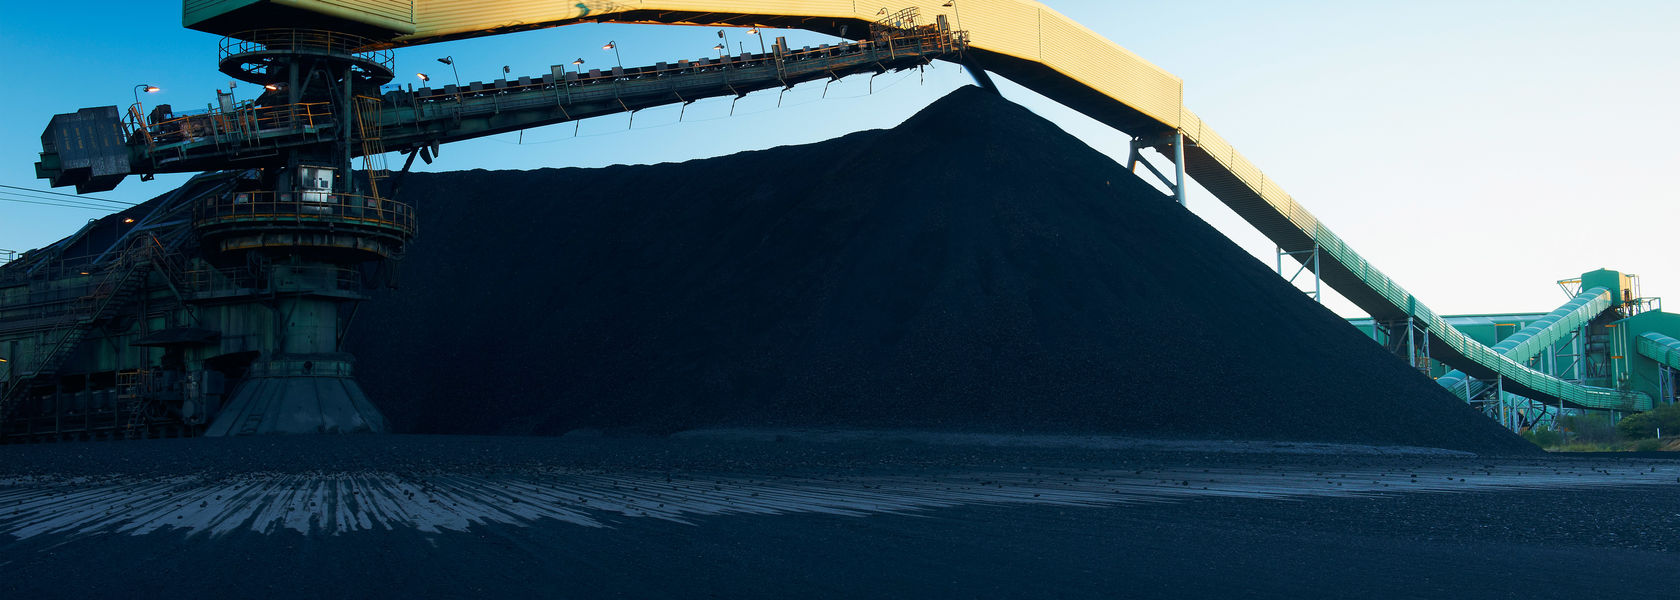 BHP cutting 290 coal jobs - MiningMonthly com